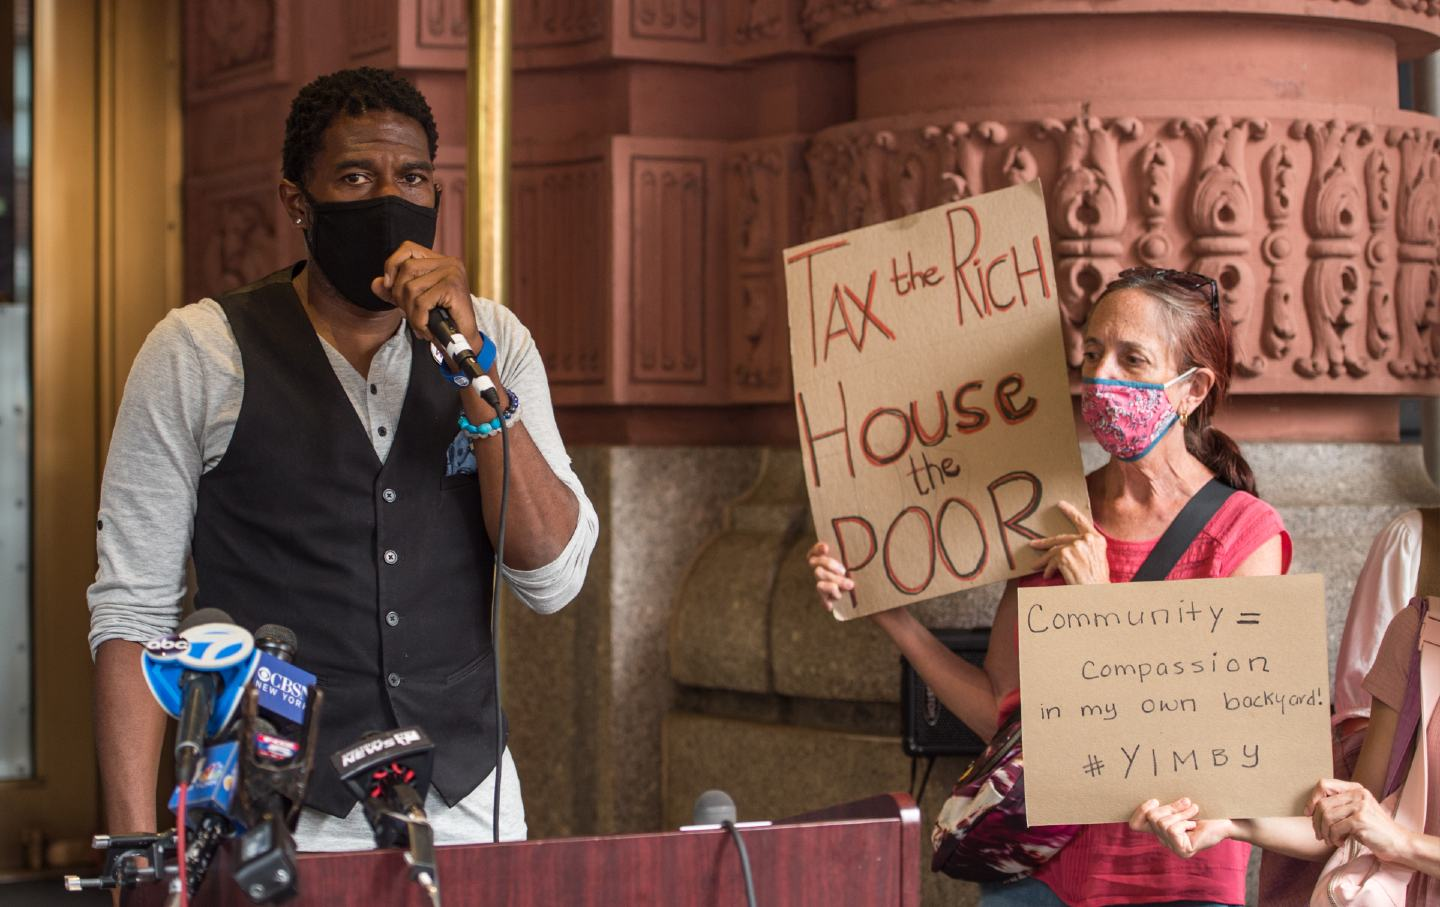 Jumaane Williams stands on the left while an unnamed protester stands on the right, holding a sign that reads